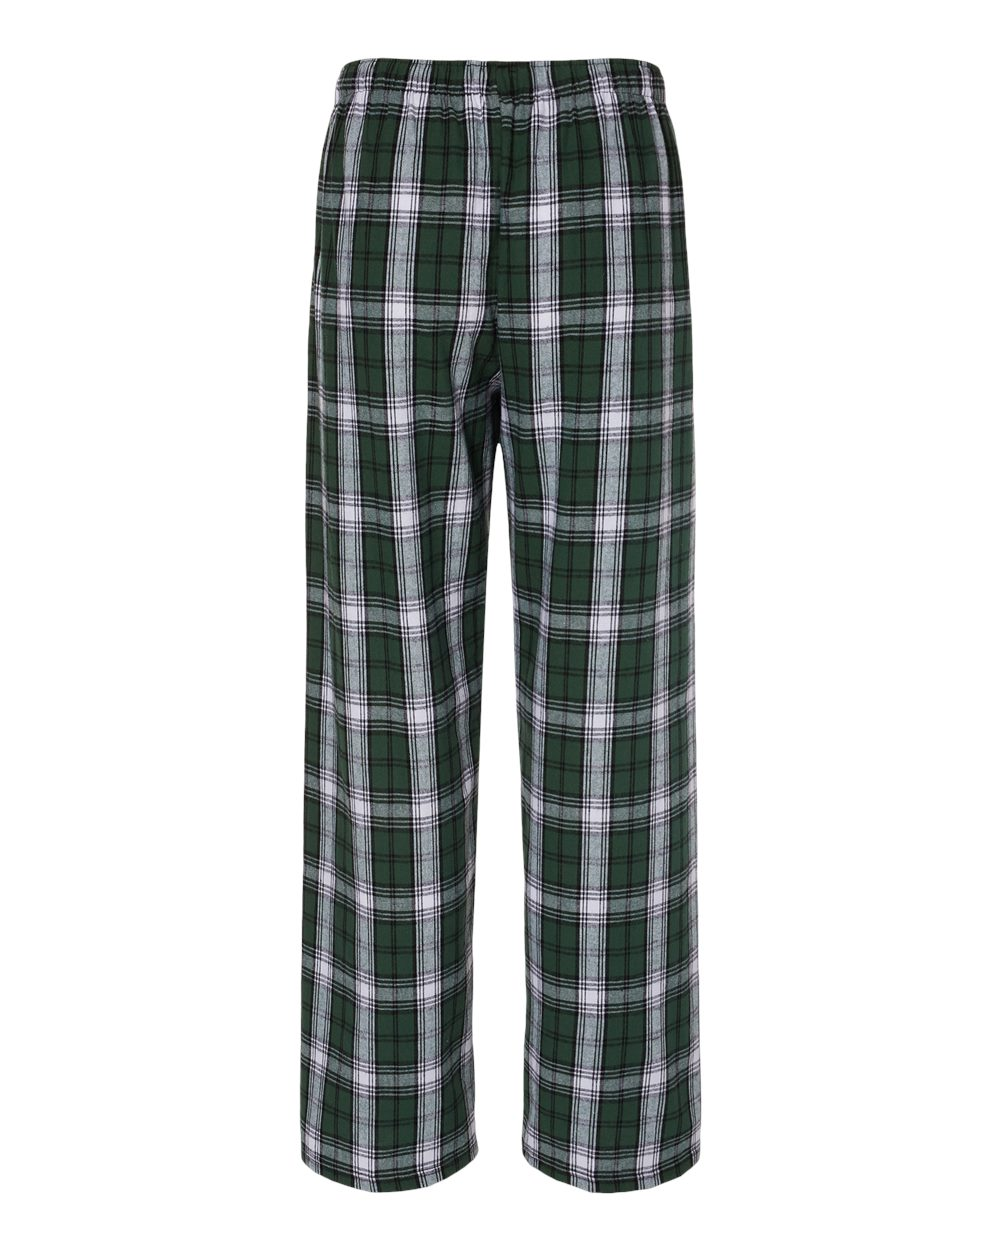 Boxercraft-Unisex-Flannel-Pants-With-Pockets-Pajama-Pants-F20-up-to-2XL thumbnail 22